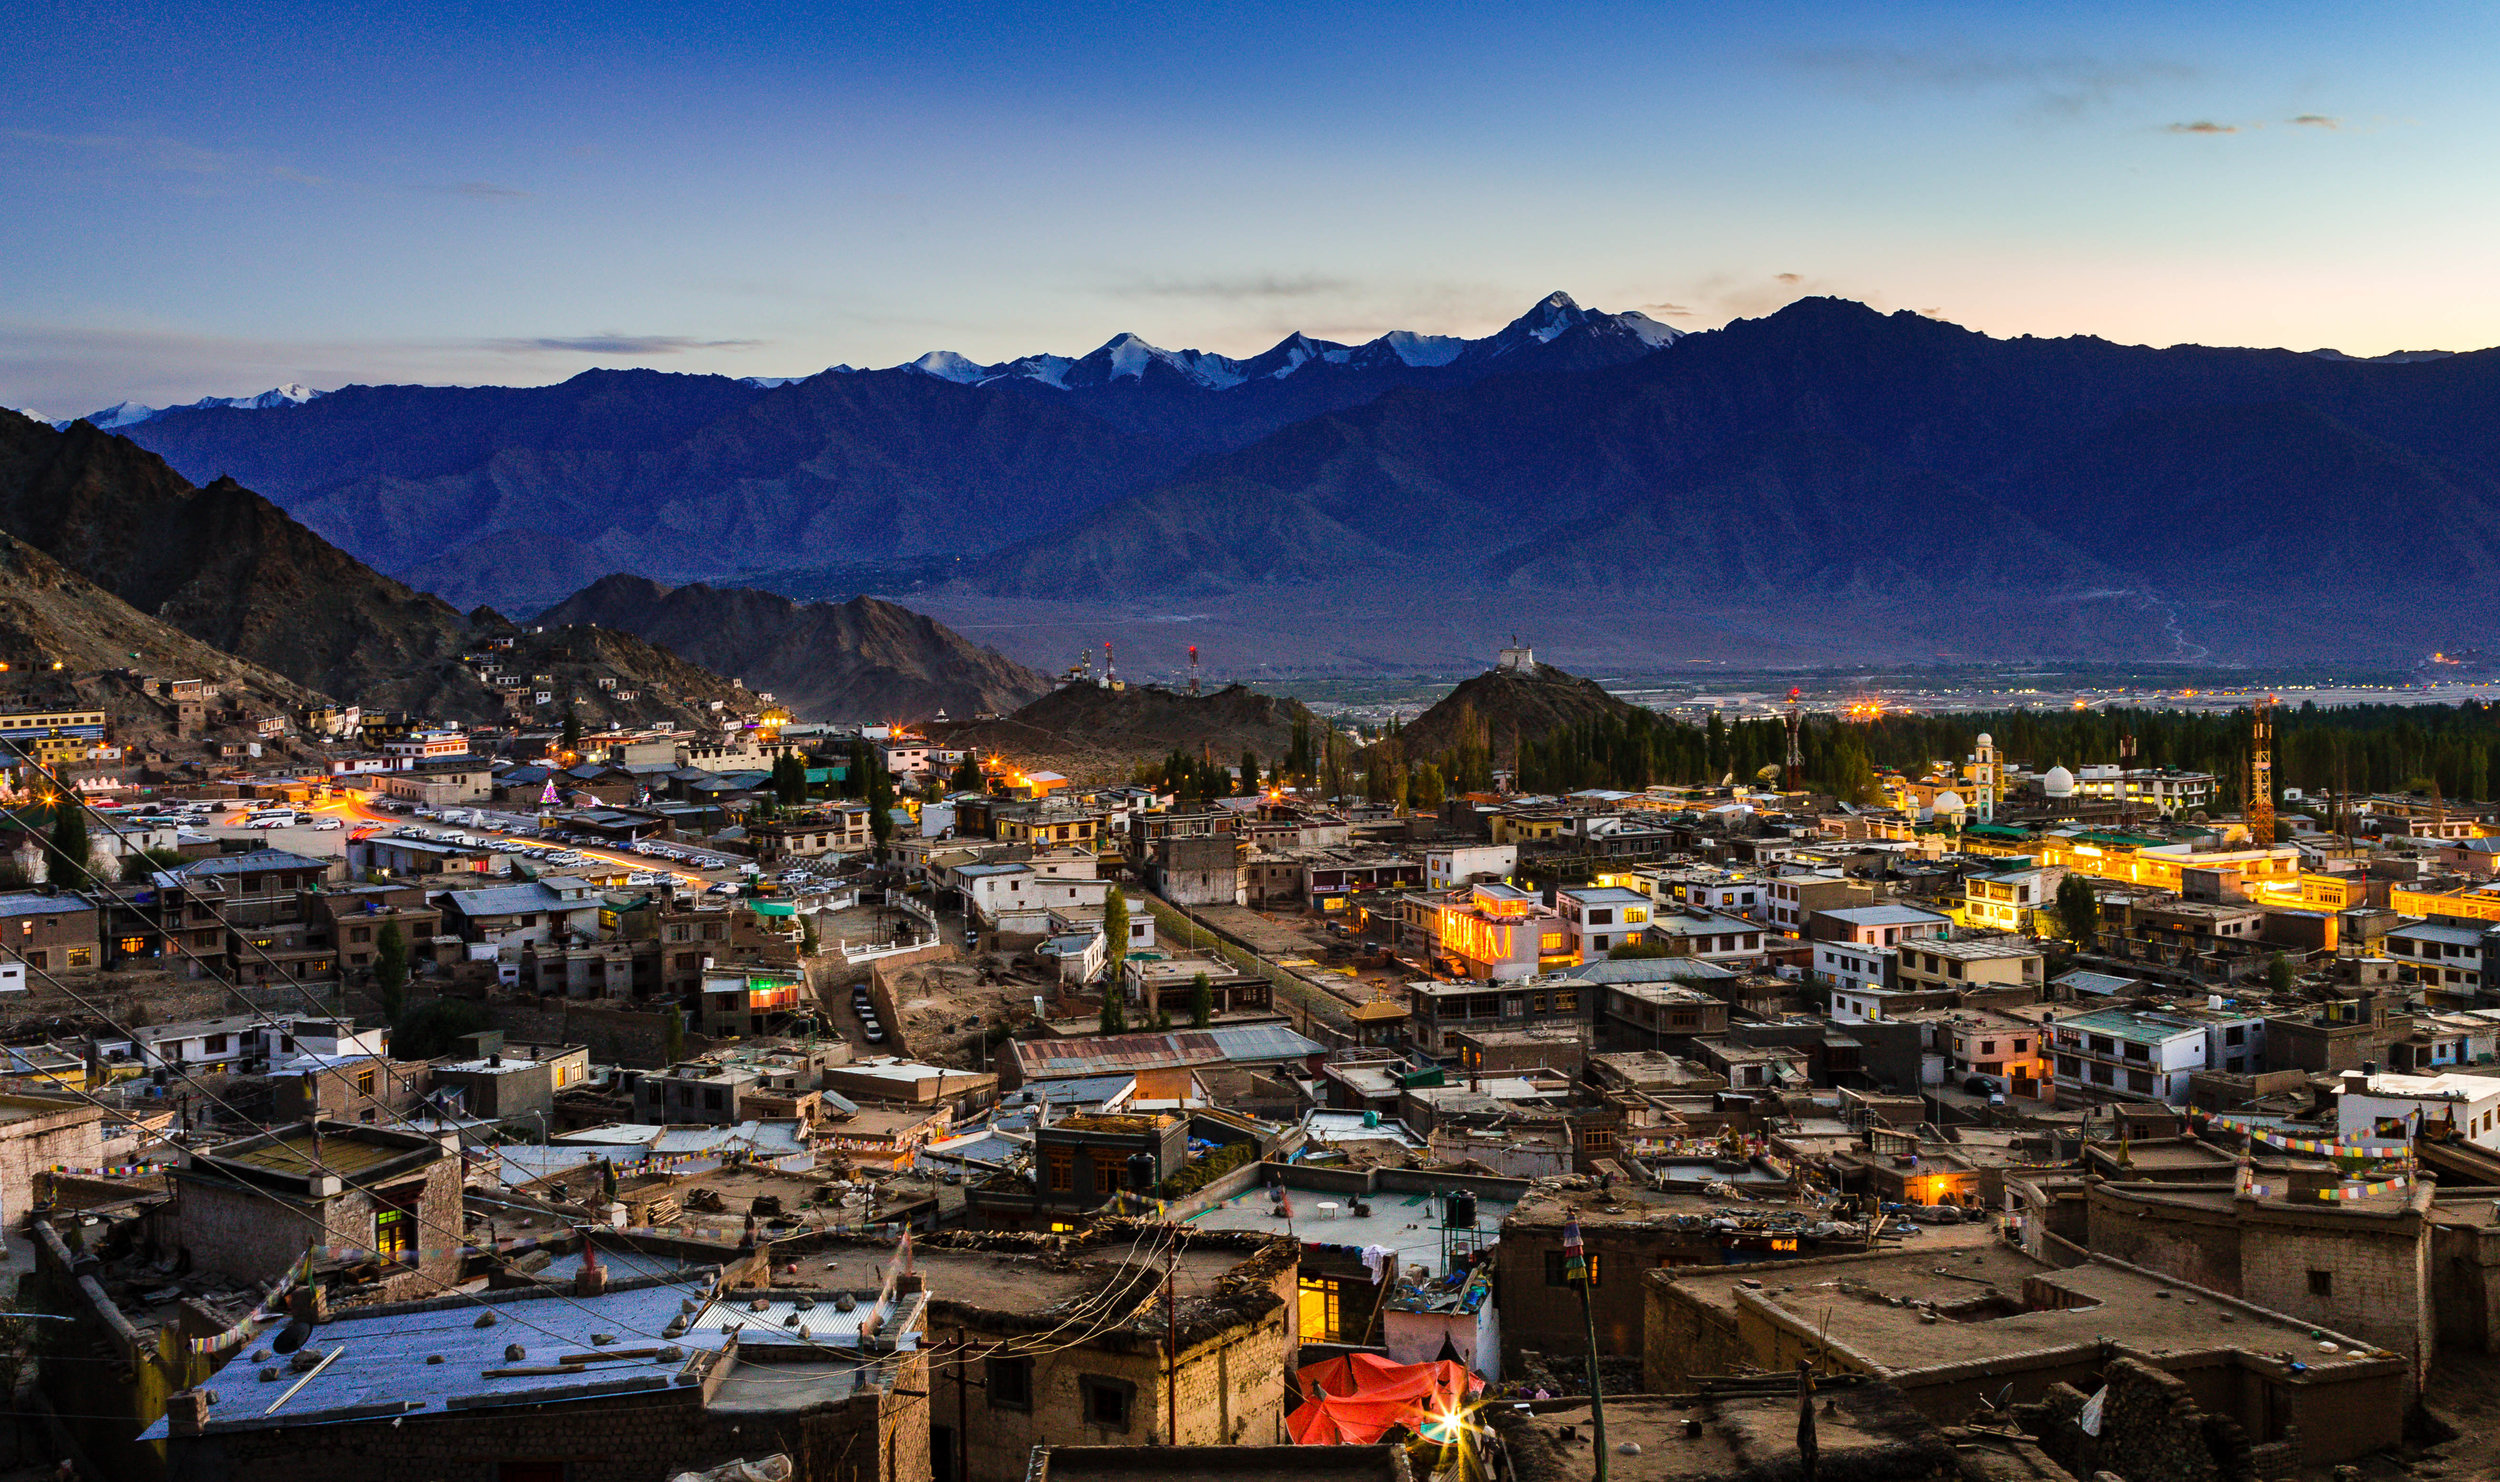 Leh Town in Himalayan Kingdom of Ladakh- India. Enhance Details applied.